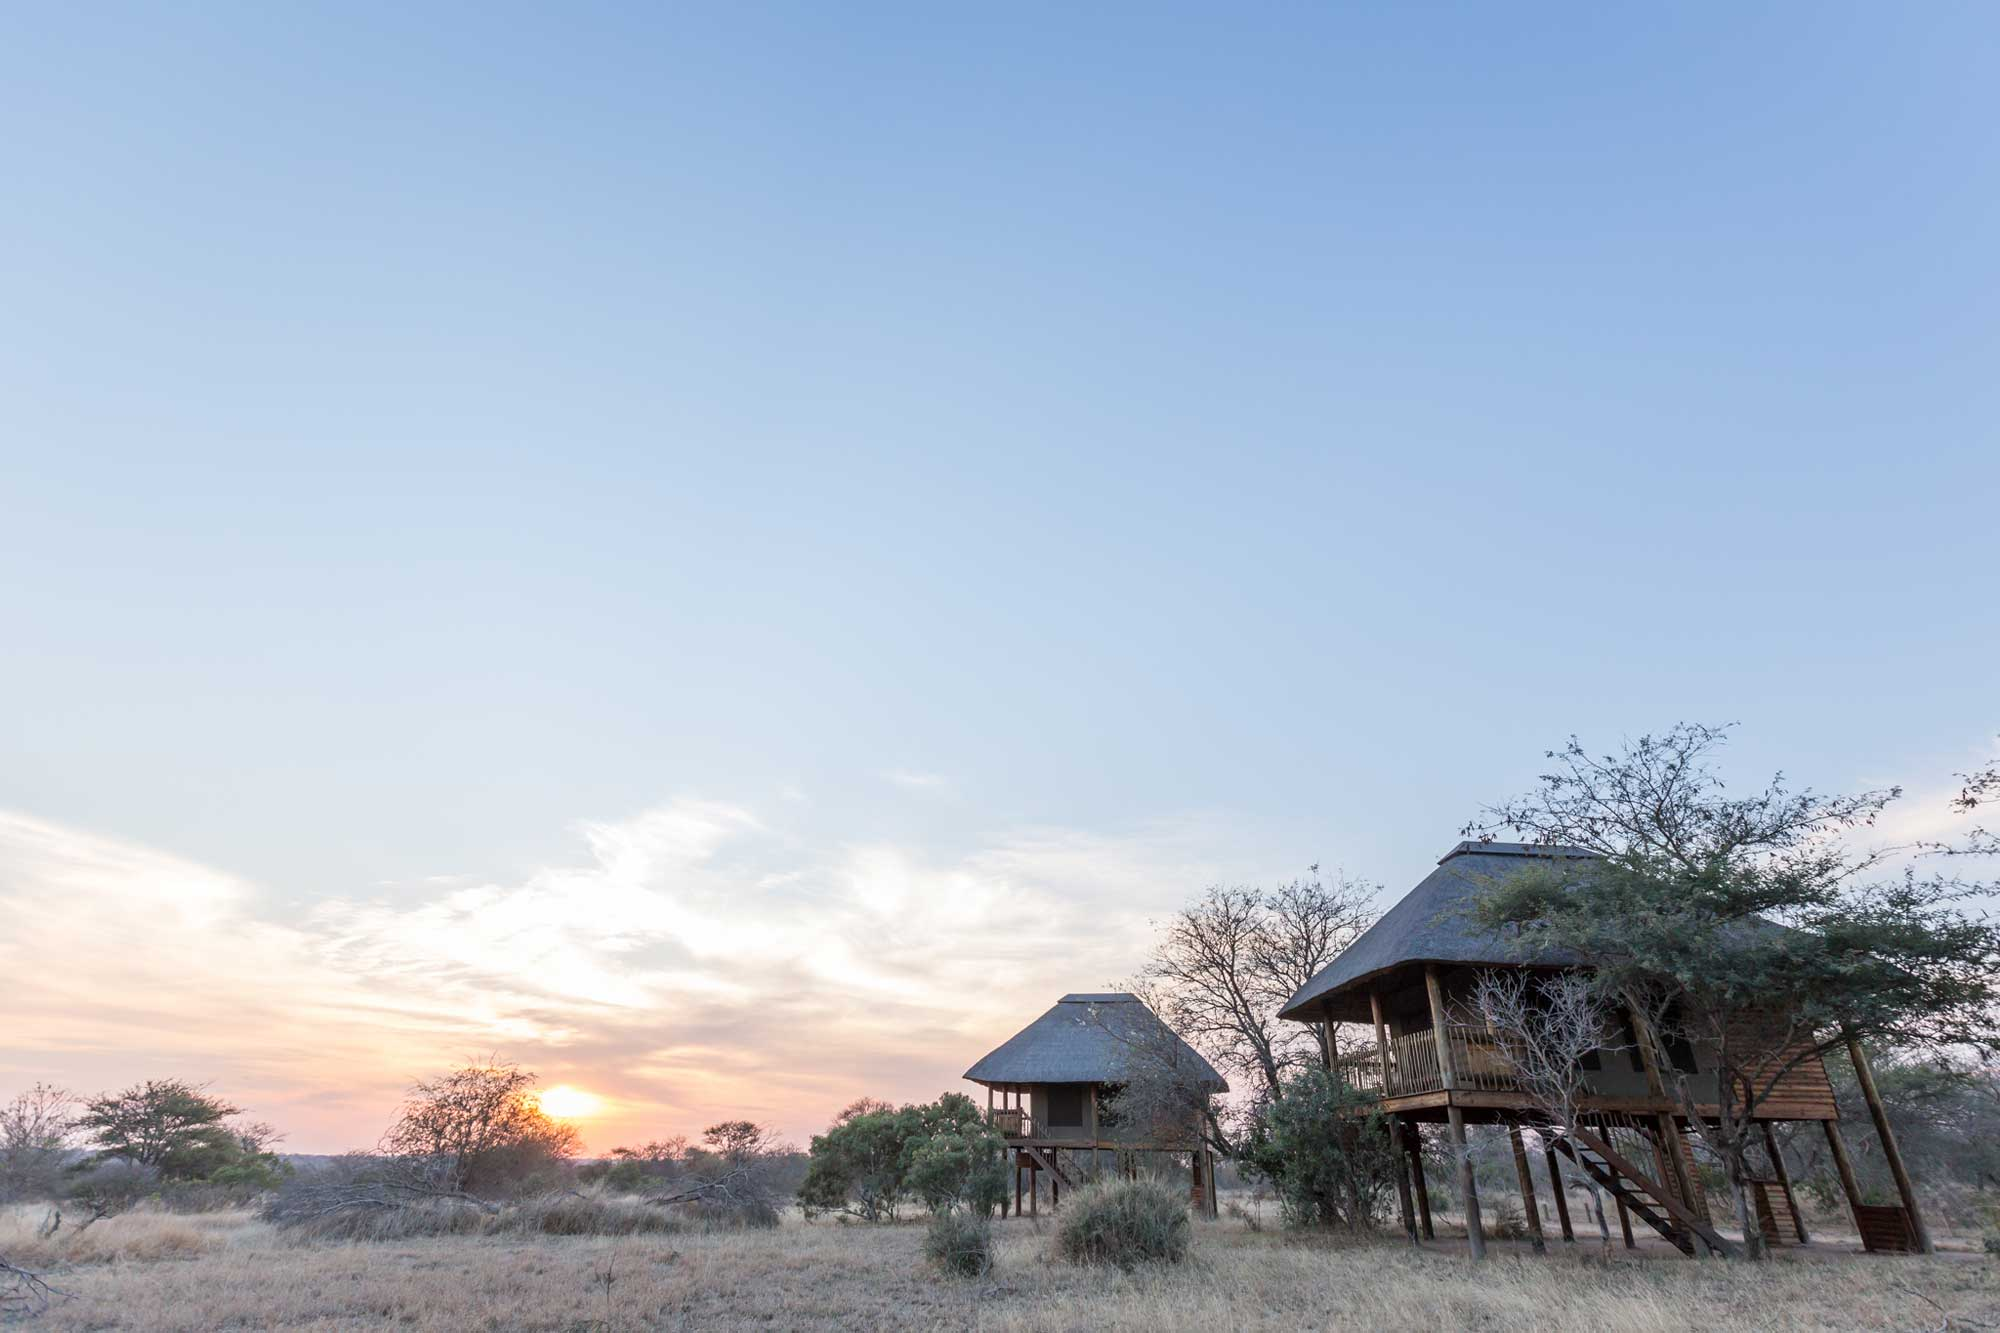 nThambo Tree Camp guest chalets, raised on wooden stilts overlooking the open plain